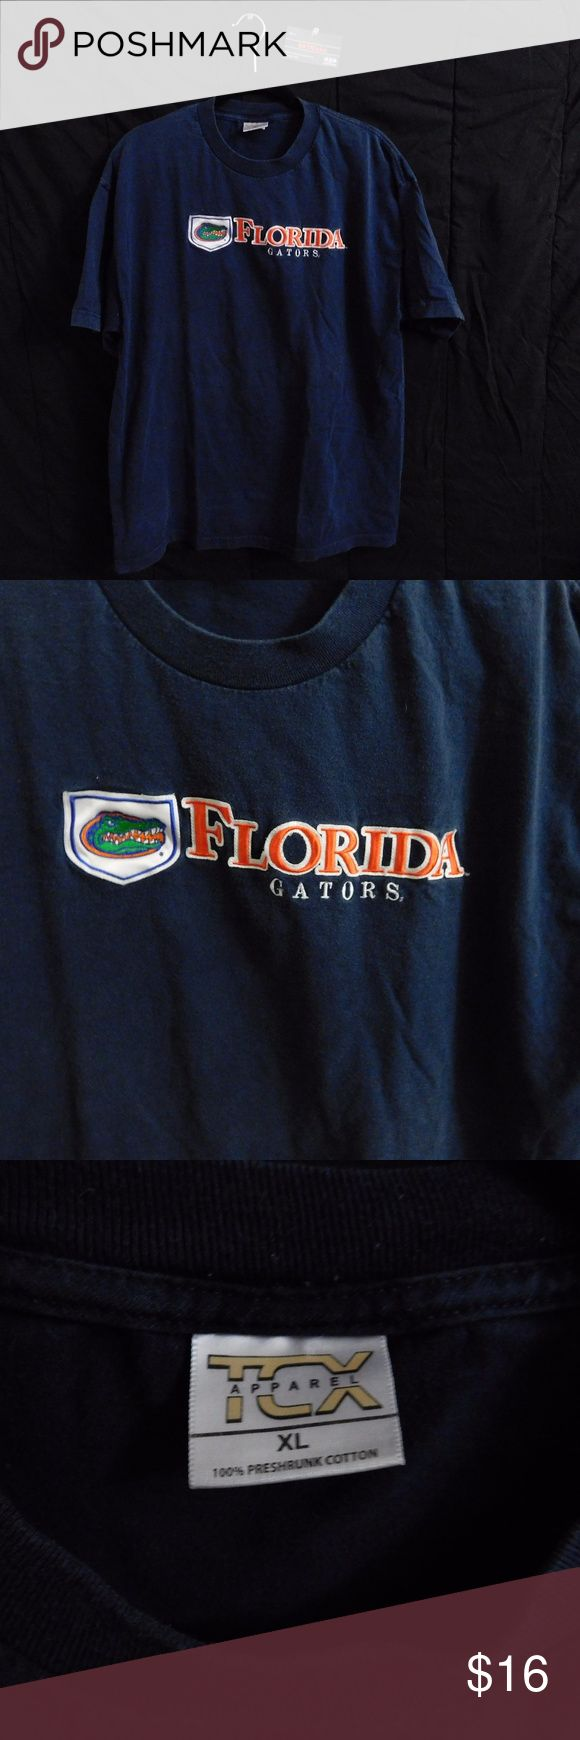 Florida Gators Spellout Tee XL USED Vintage Embroidered TCX Apparel Florida Gators Spellout T Shirt | MENS size XL | Good condition, minor fading | may run small , 100% PreShrunk Cotton  For Discounts Follow Me on Instagram @407vintage !  KEYWORDS/TAGS: ultra boost , Tommy Hilfiger , Polo Sport , Nautica , NMD , supreme , kith , bred , adidas , banned , french blue , stussy , Maestro , vintage , kaws , solefly , trophy room , box logo , gamma blue , retro jordan , steal , foams , foamposite…